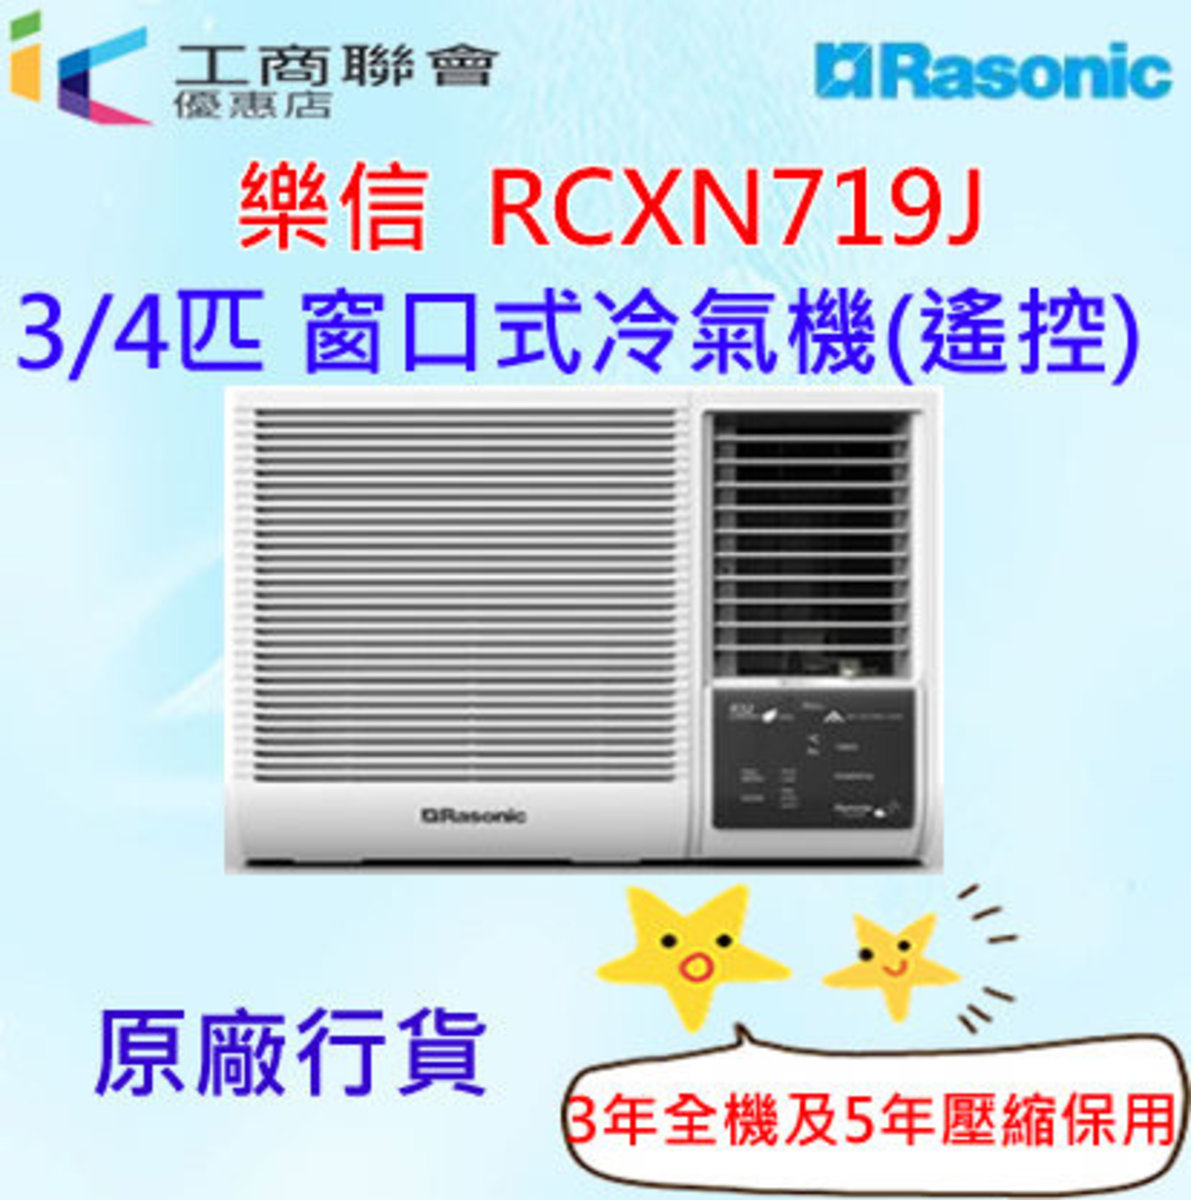 RCXN719J 3/4HP Window Air Conditioner (Remote Control) (Free Removal Service)